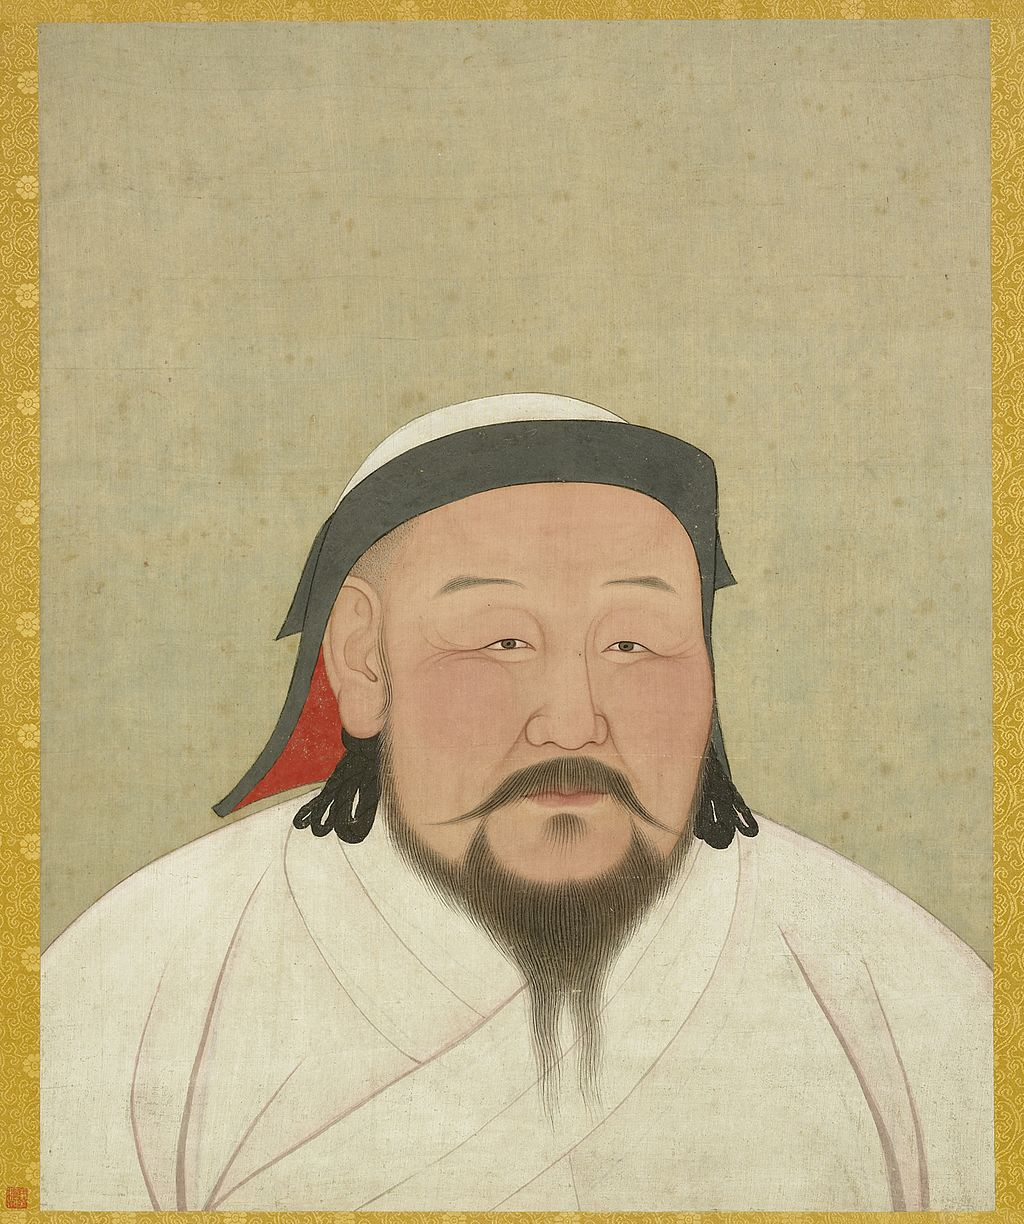 Kublai Khan as he may have appeared in the 1260s. Painting by Anige, dated to 1294.